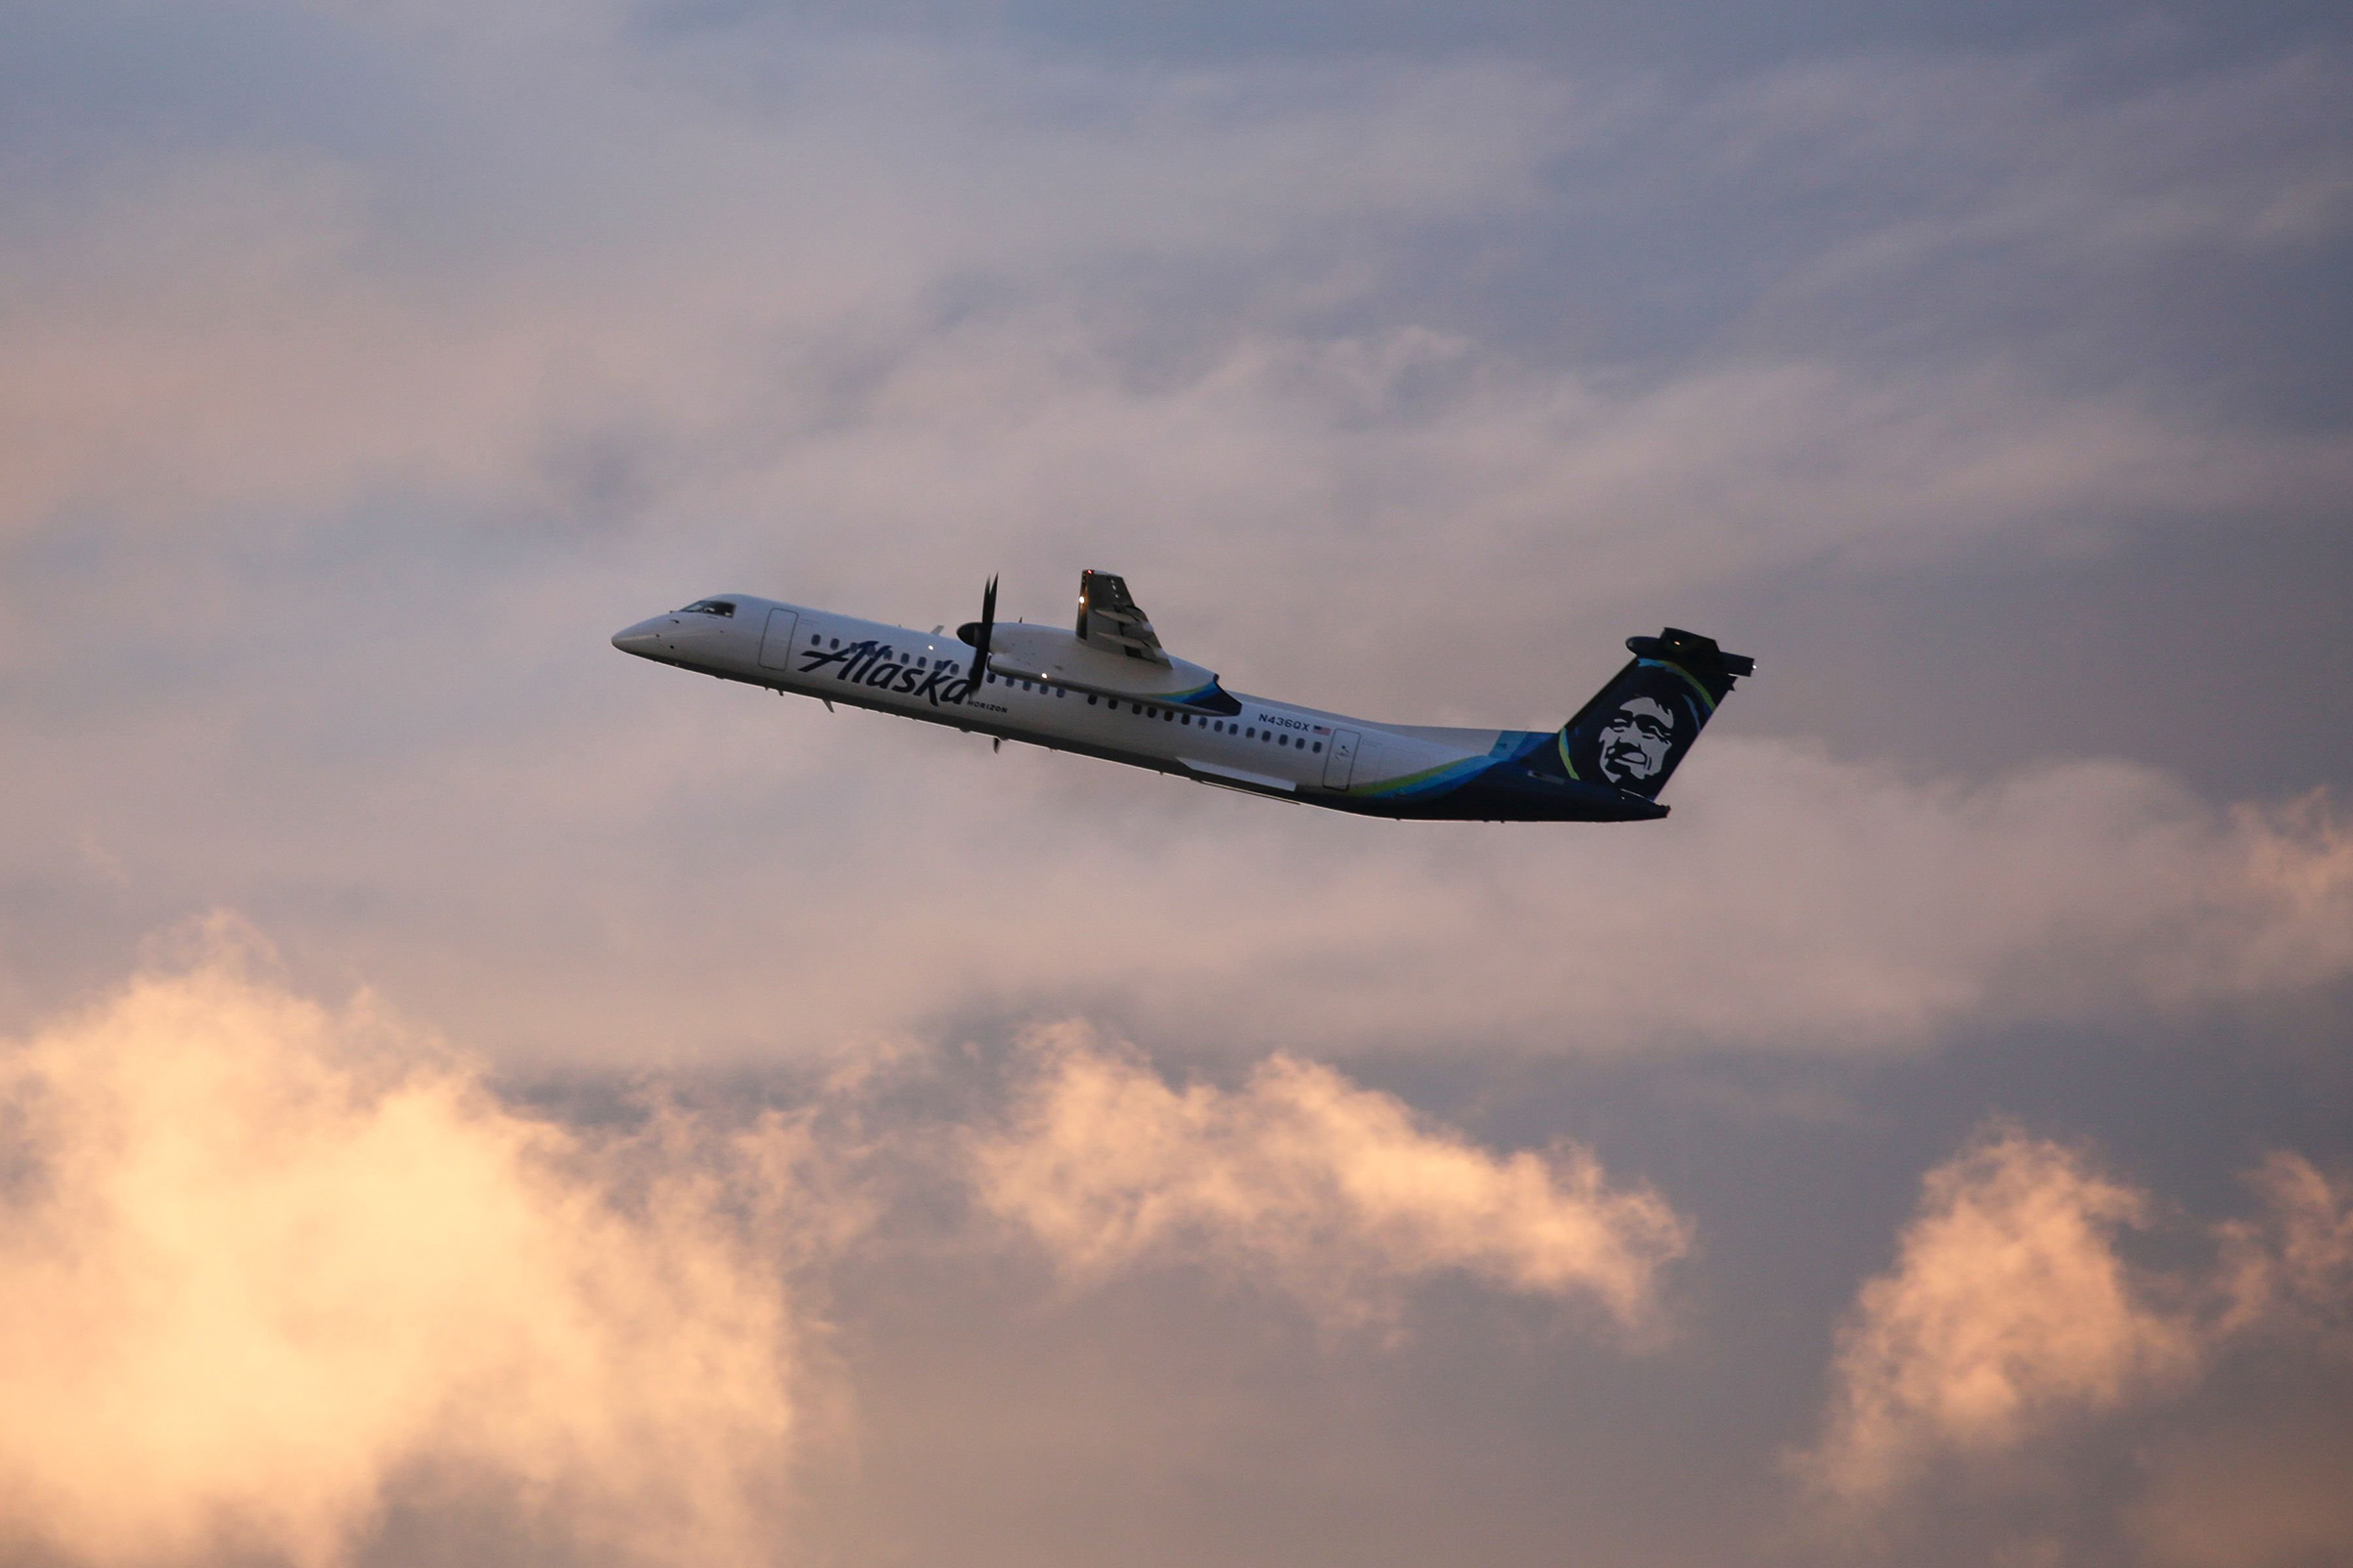 An Alaska Airlines Bombardier Dash 8 Q400 operated by Horizon Air takes off from at Seattle-Tacoma International Airport International Airport one day after Horizon Air ground crew member Richard Russell took a similar plane from the airport in Seattle, Washington on August 11, 2018.